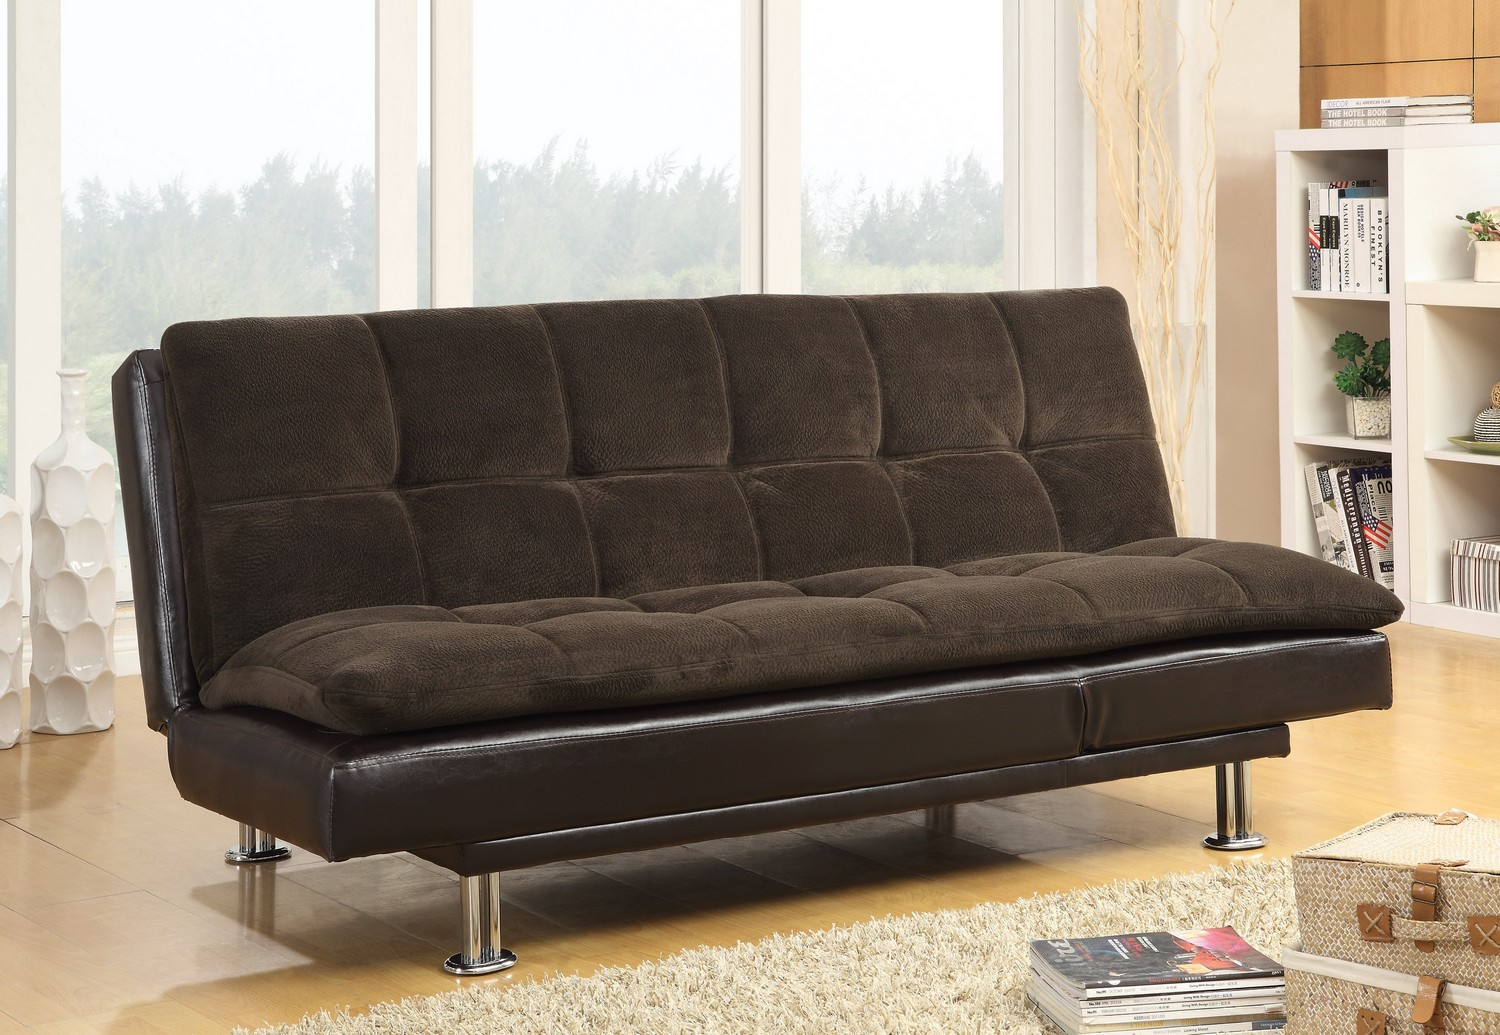 Coaster 300313 Sofa Bed  Twotoned Brown 300313 at Homelementcom